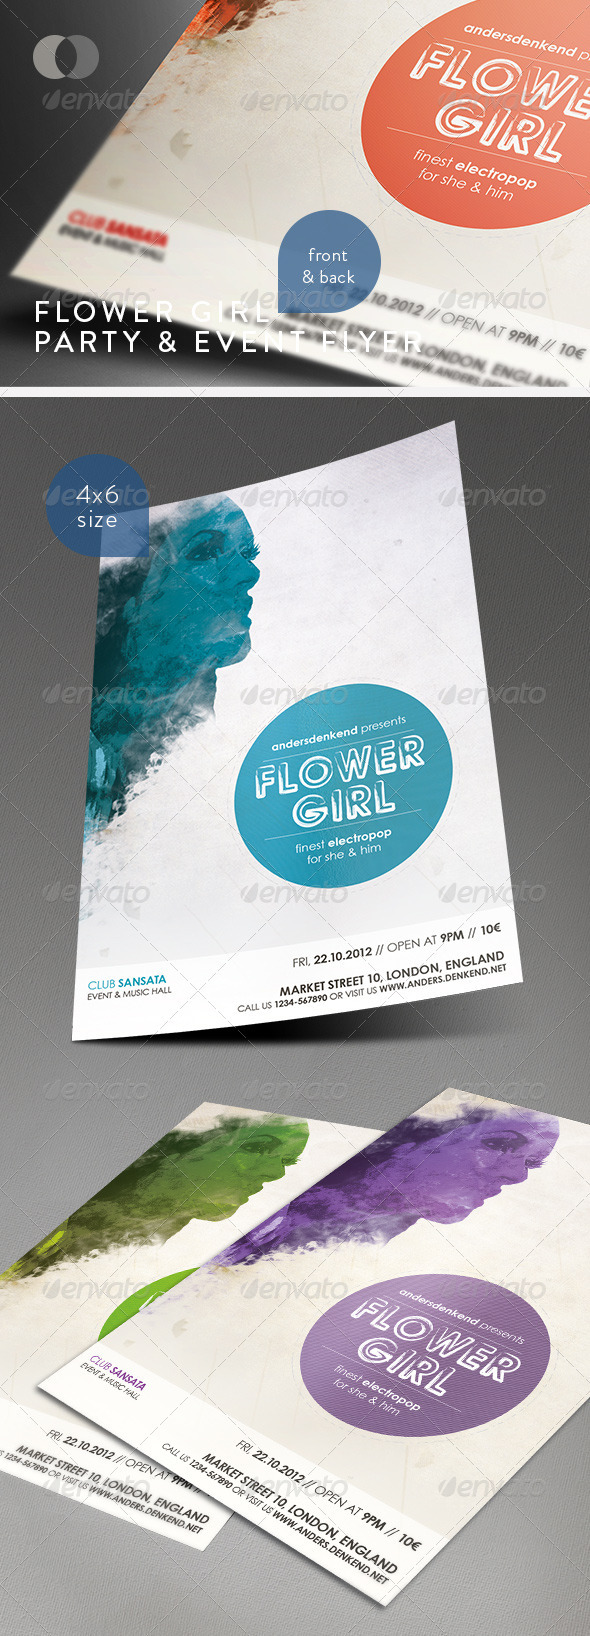 GraphicRiver Music & Event Flyer Flower Girl 1585954